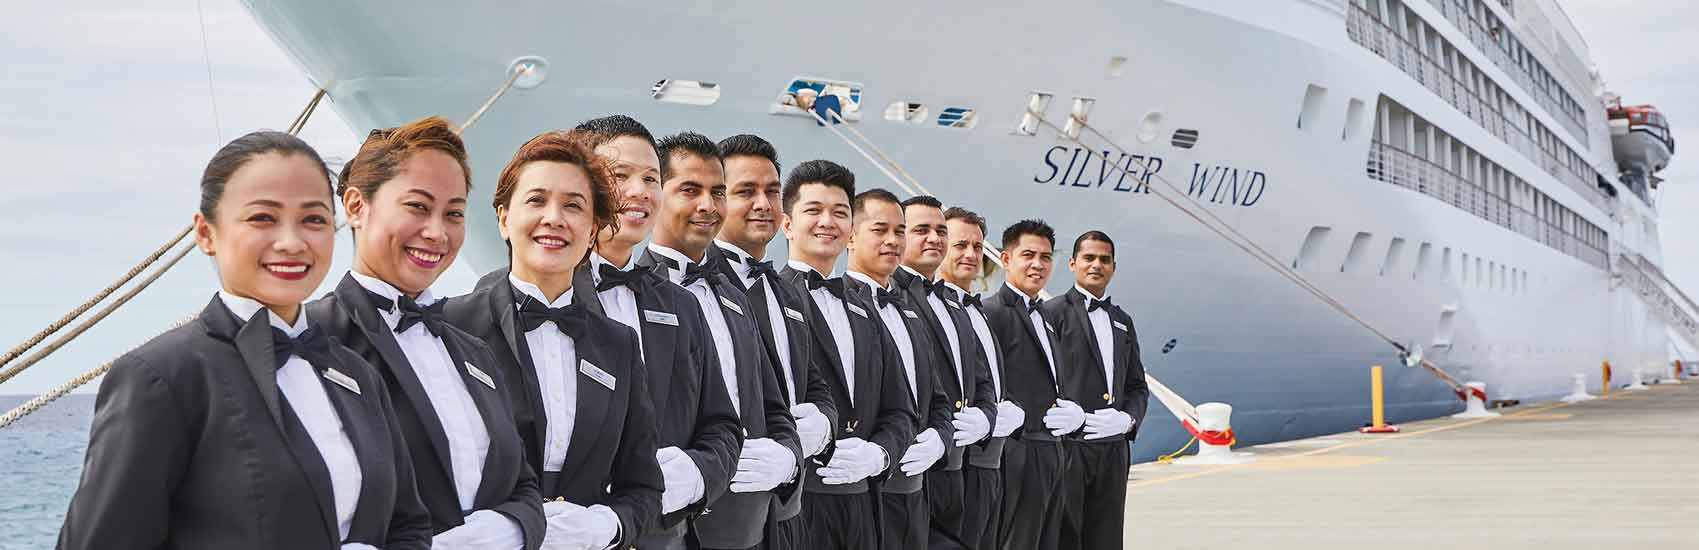 Exclusive Virtuoso Offer with Silversea Cruises 3